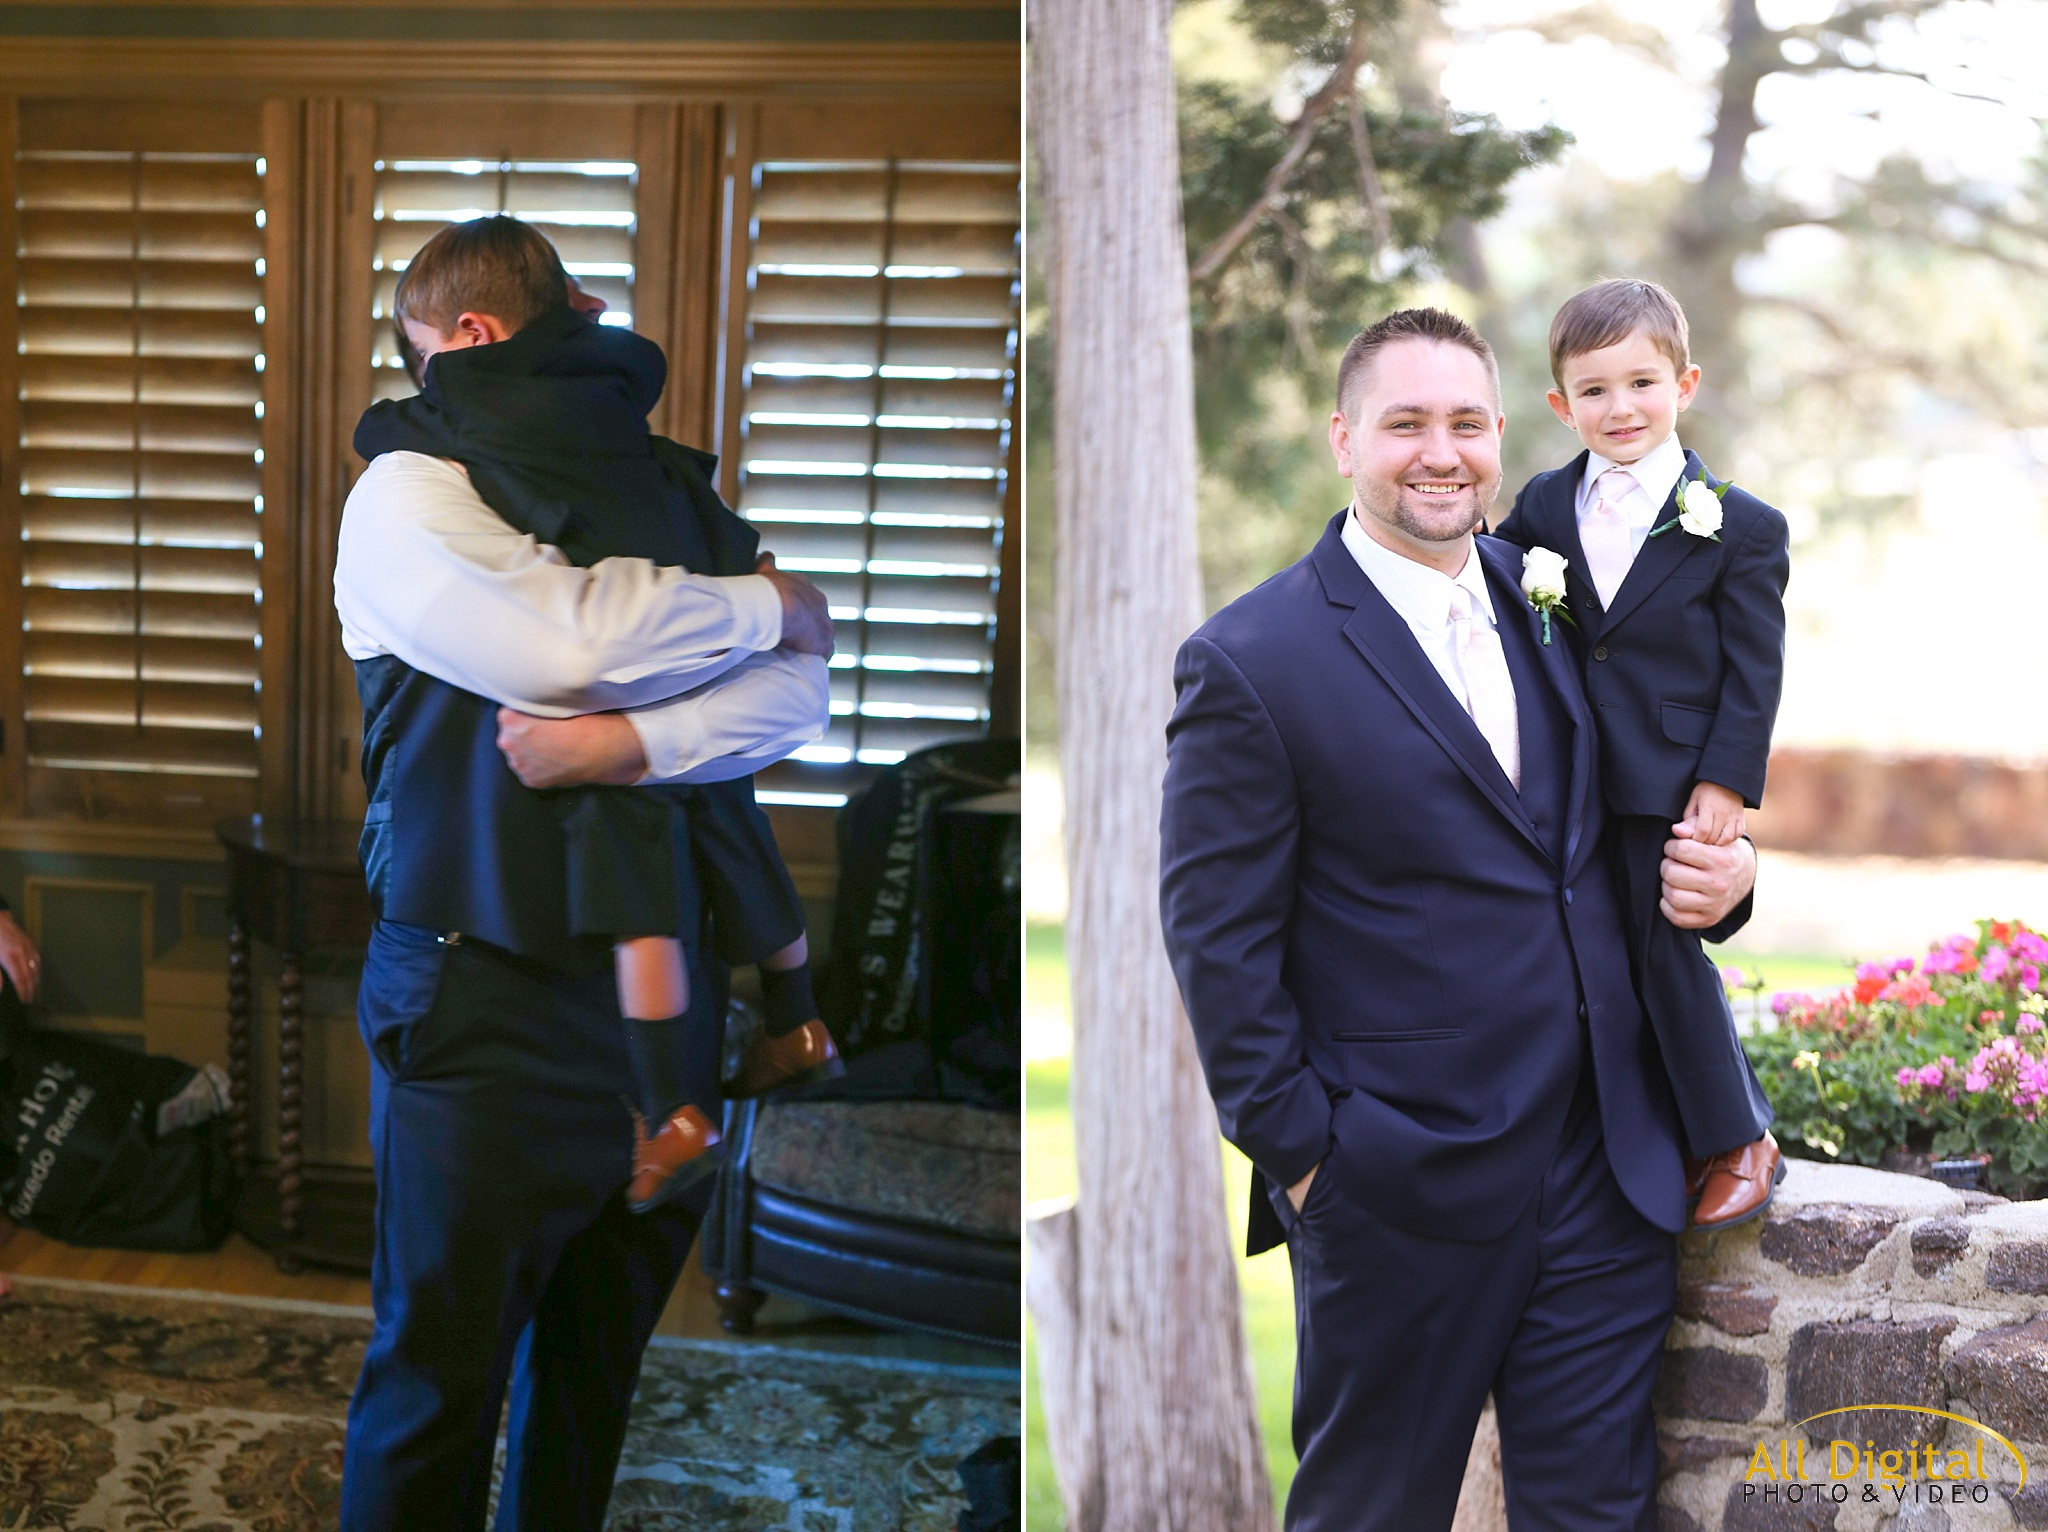 Groom & Ring Bearer Photos at Highlands Ranch Mansion